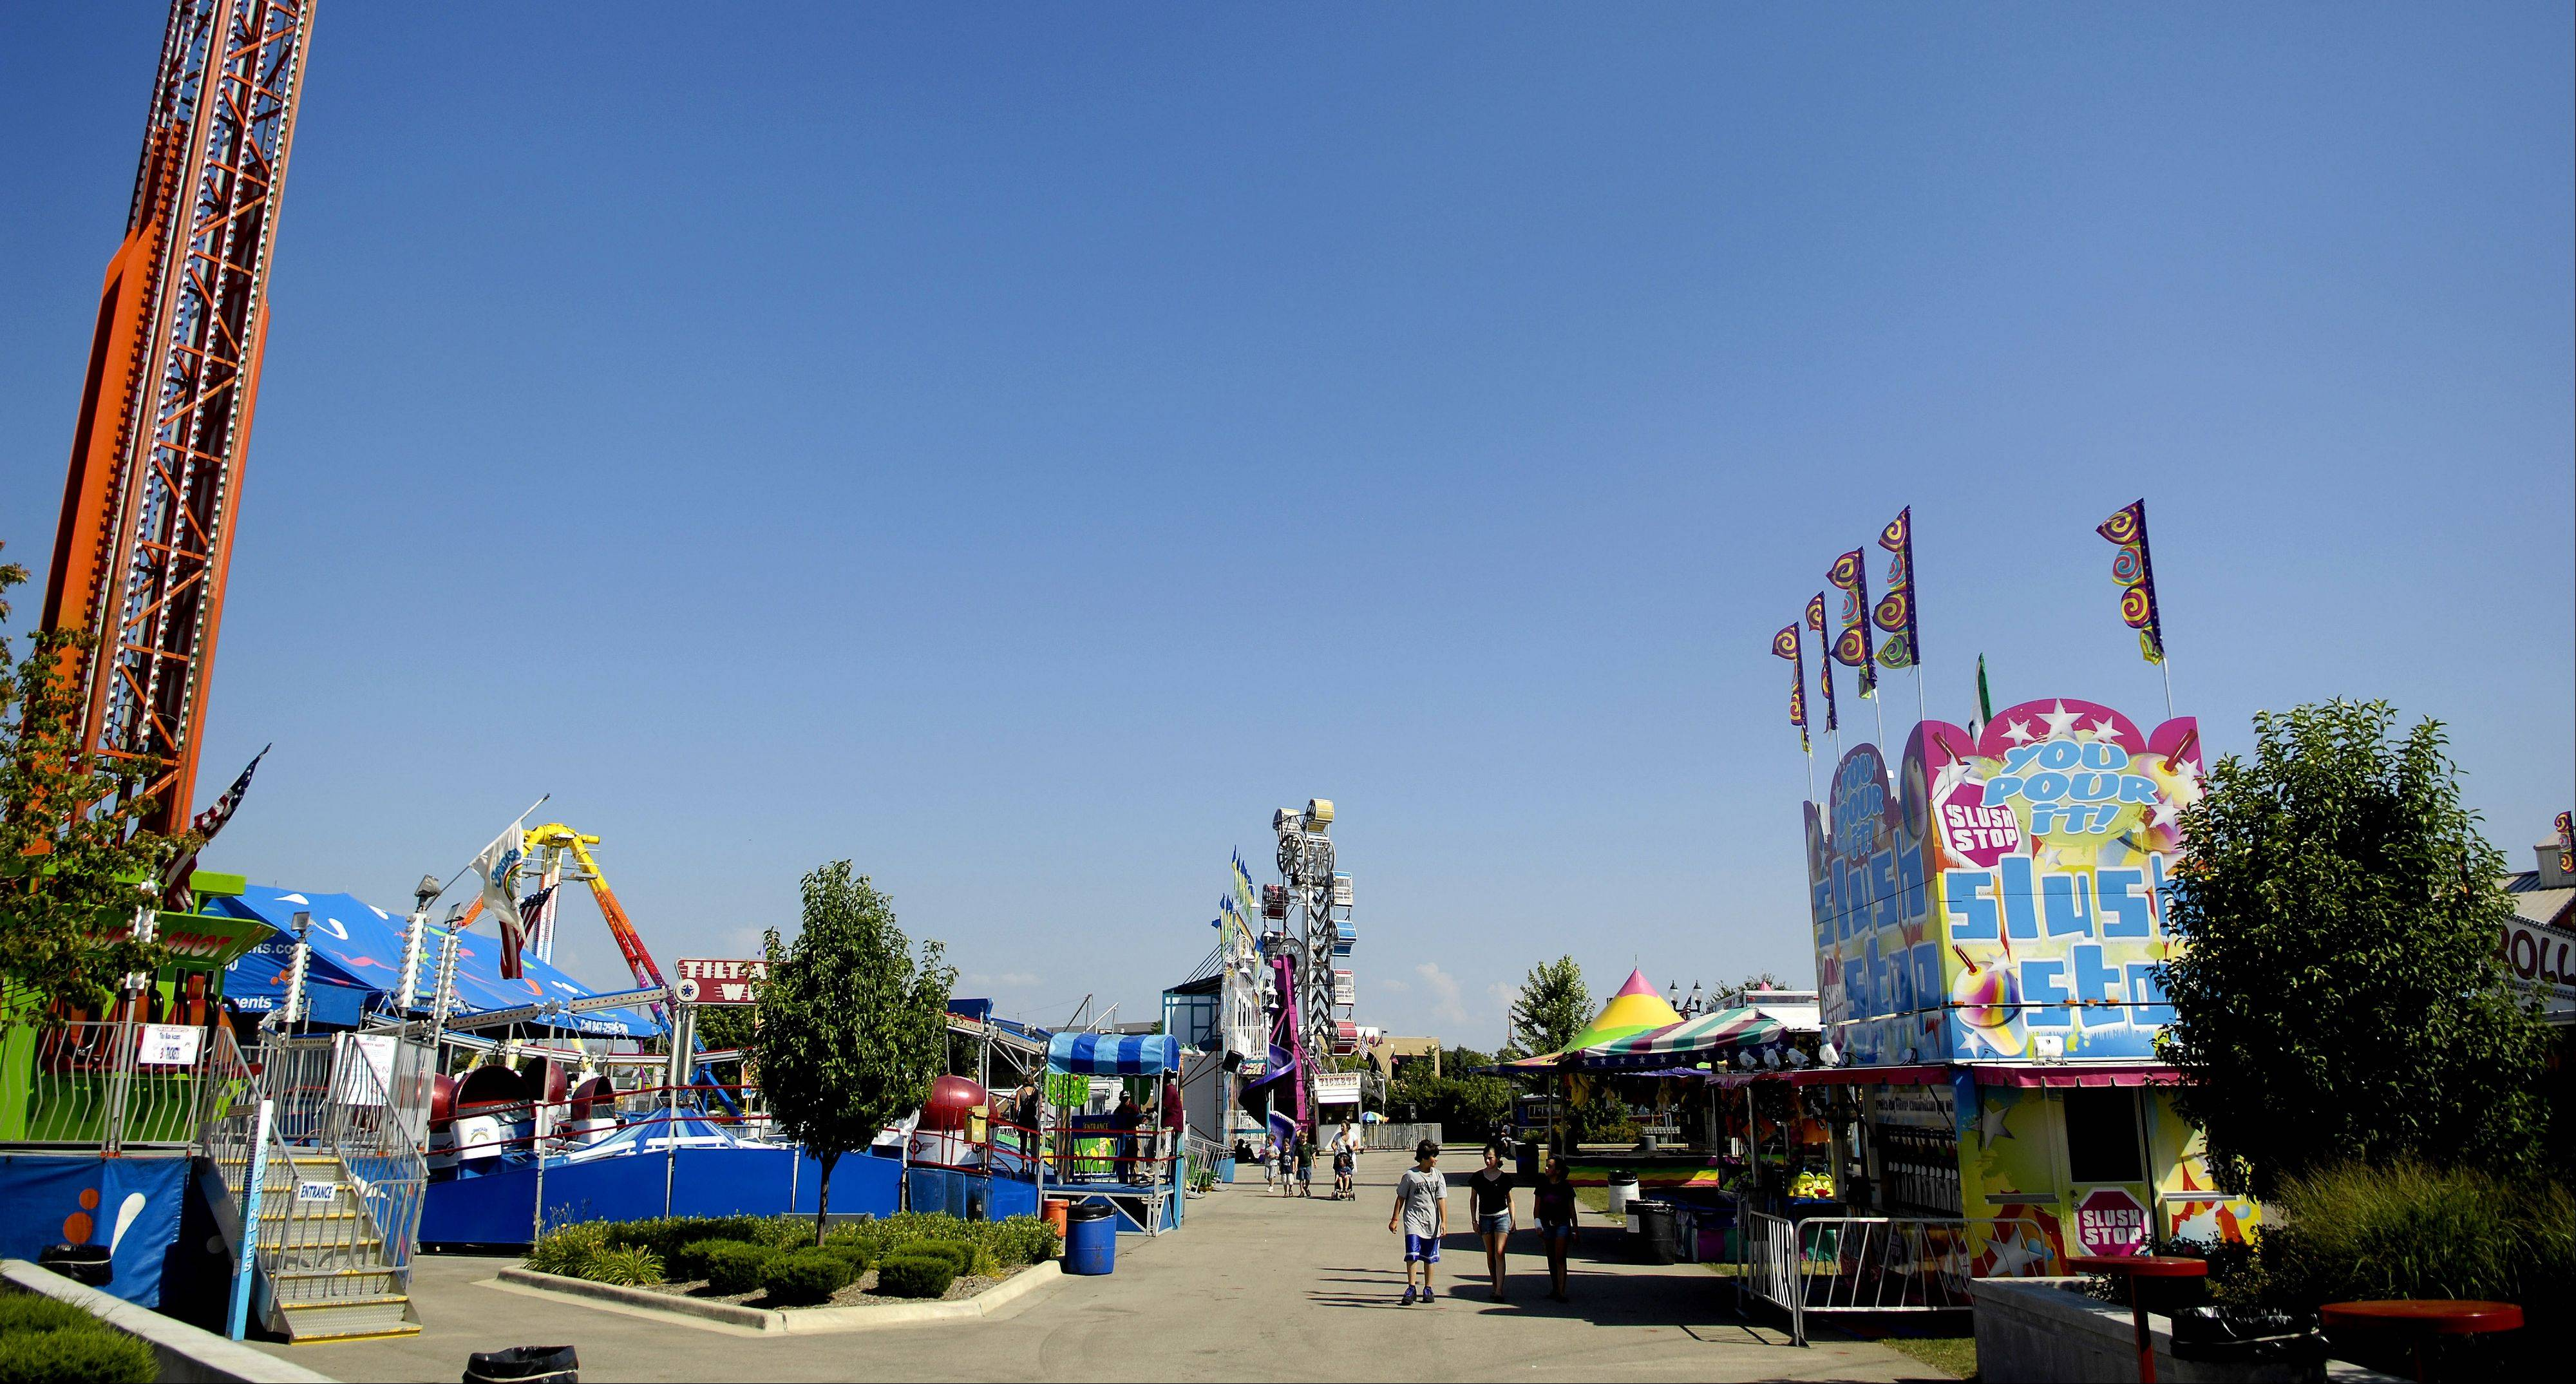 Temperatures near 100 degrees kept attendance very low Thursday afternoon during day two of the Kane County Fair in St. Charles.